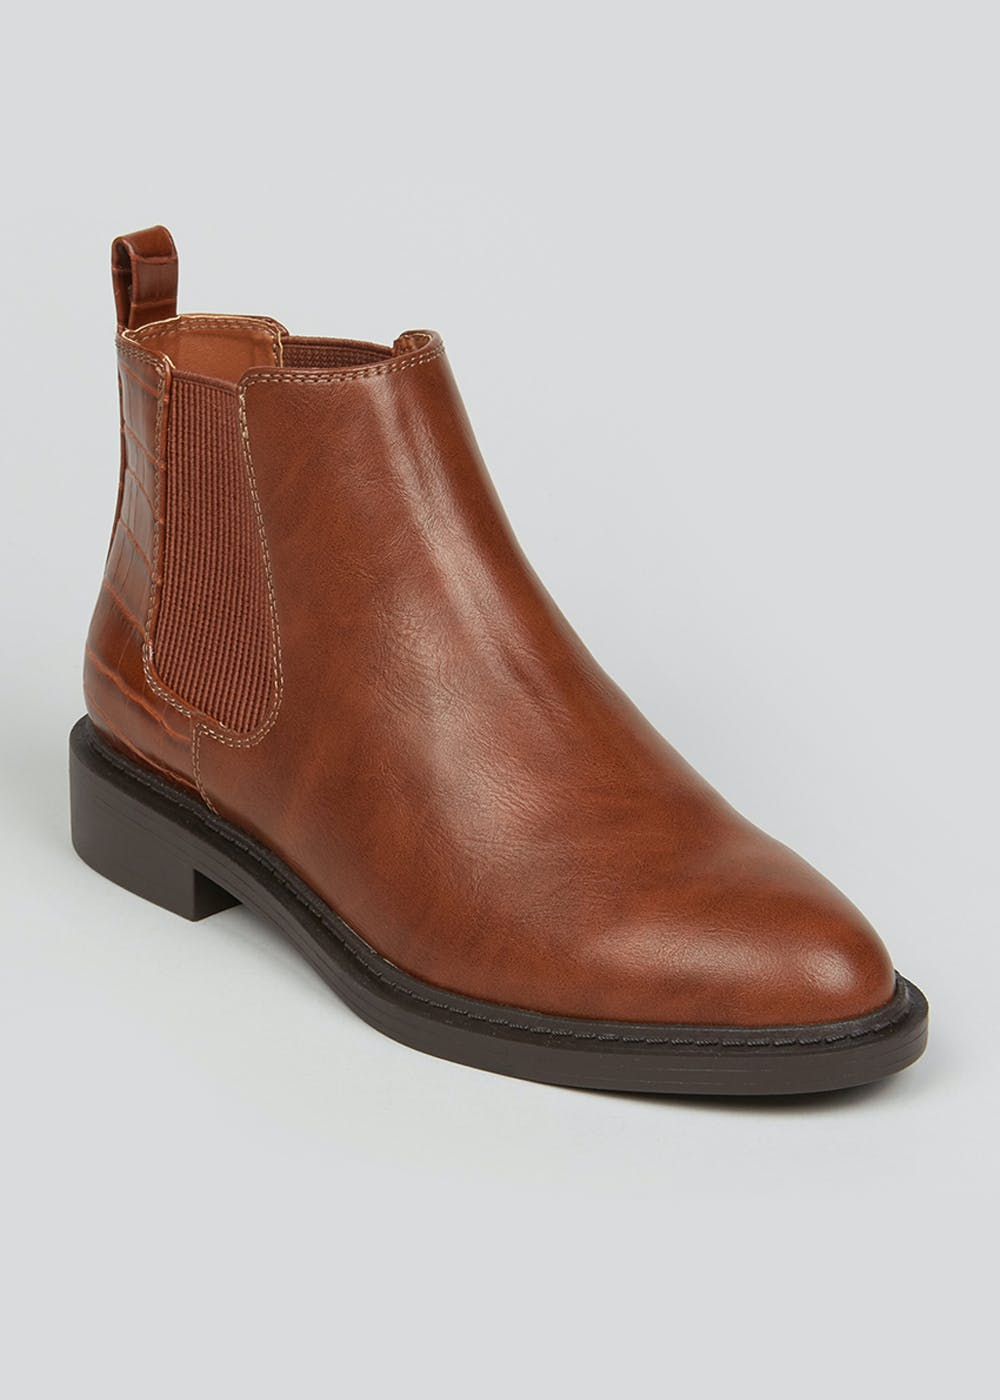 Wide Fit Shoes \u0026 Boots - Wide Fitting